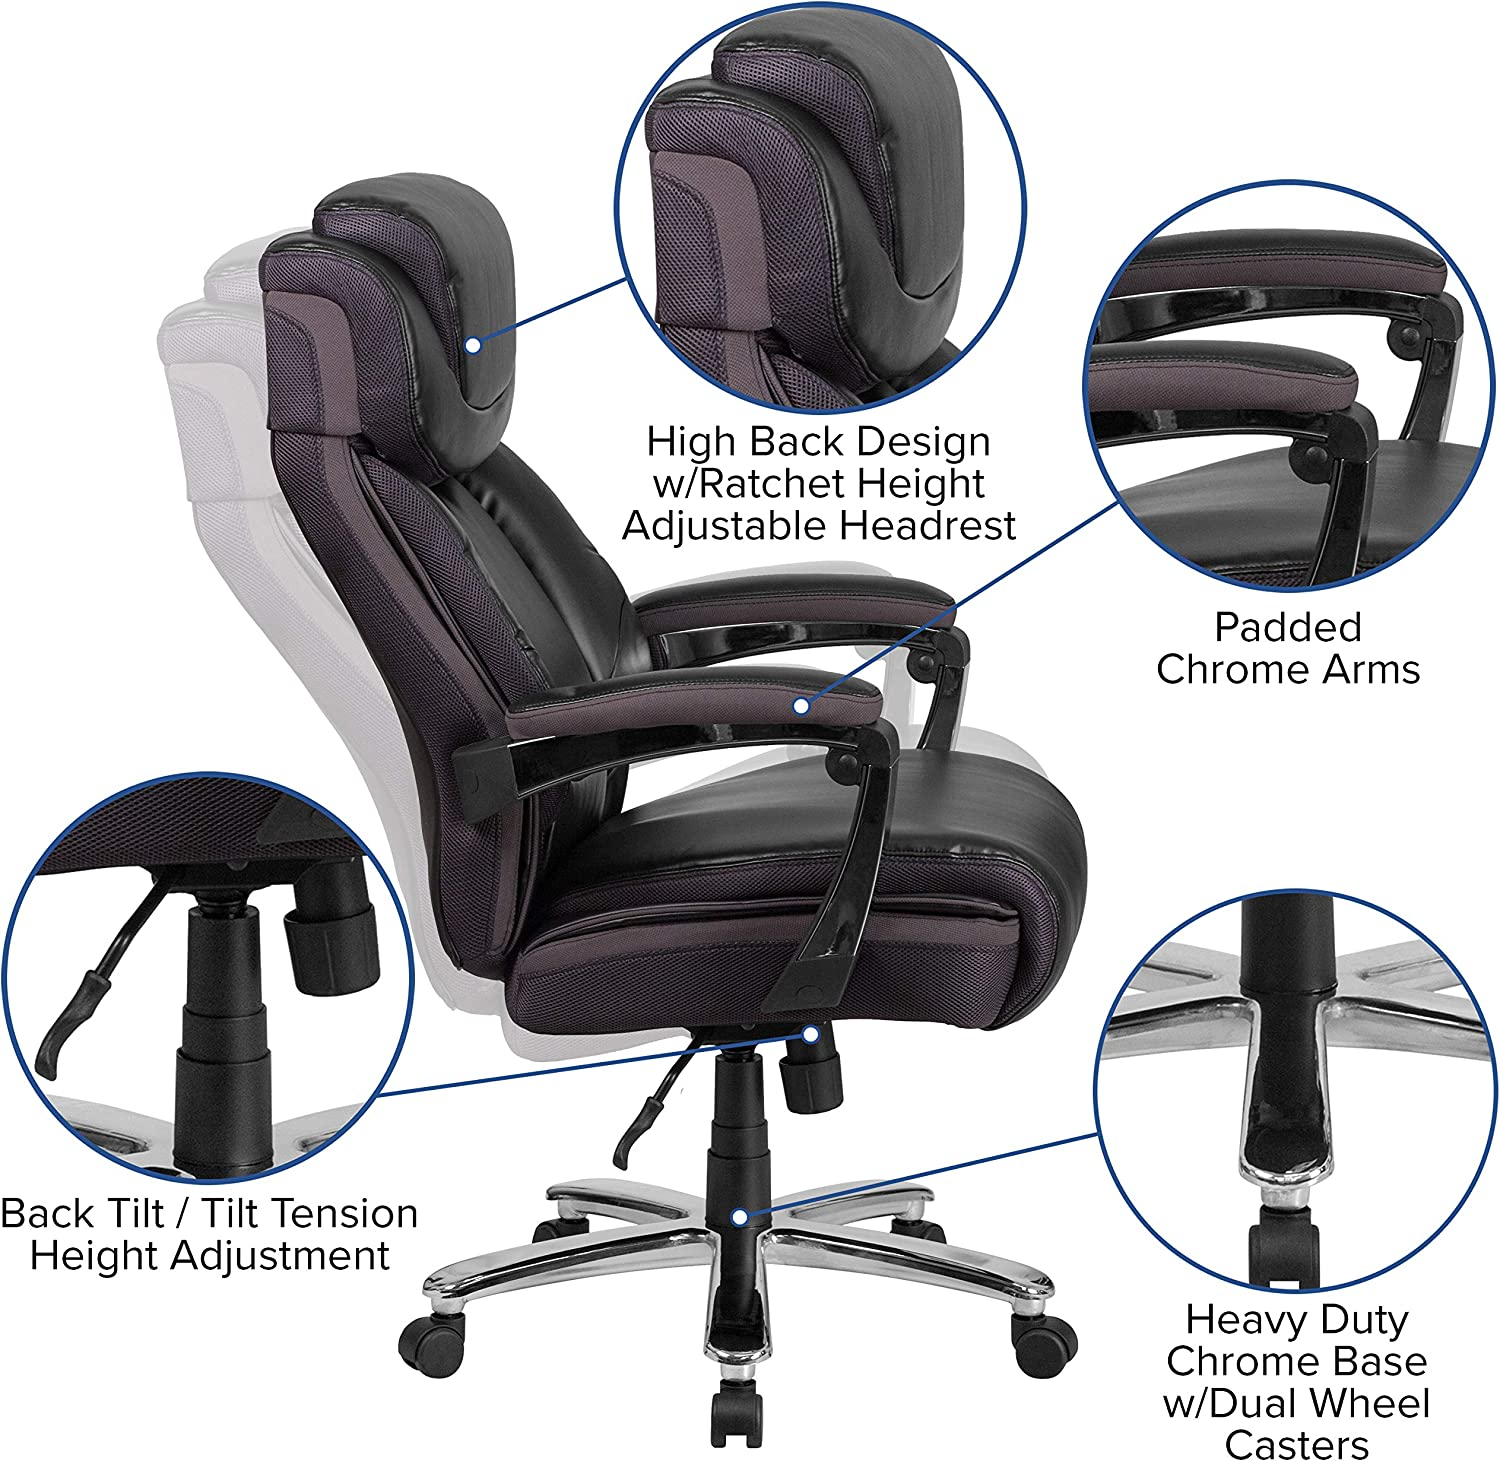 91hy5X4CCNL. AC SL1500 - What Are The Best Office Chair For Lower Back Pain Under $300 - ChairPicks